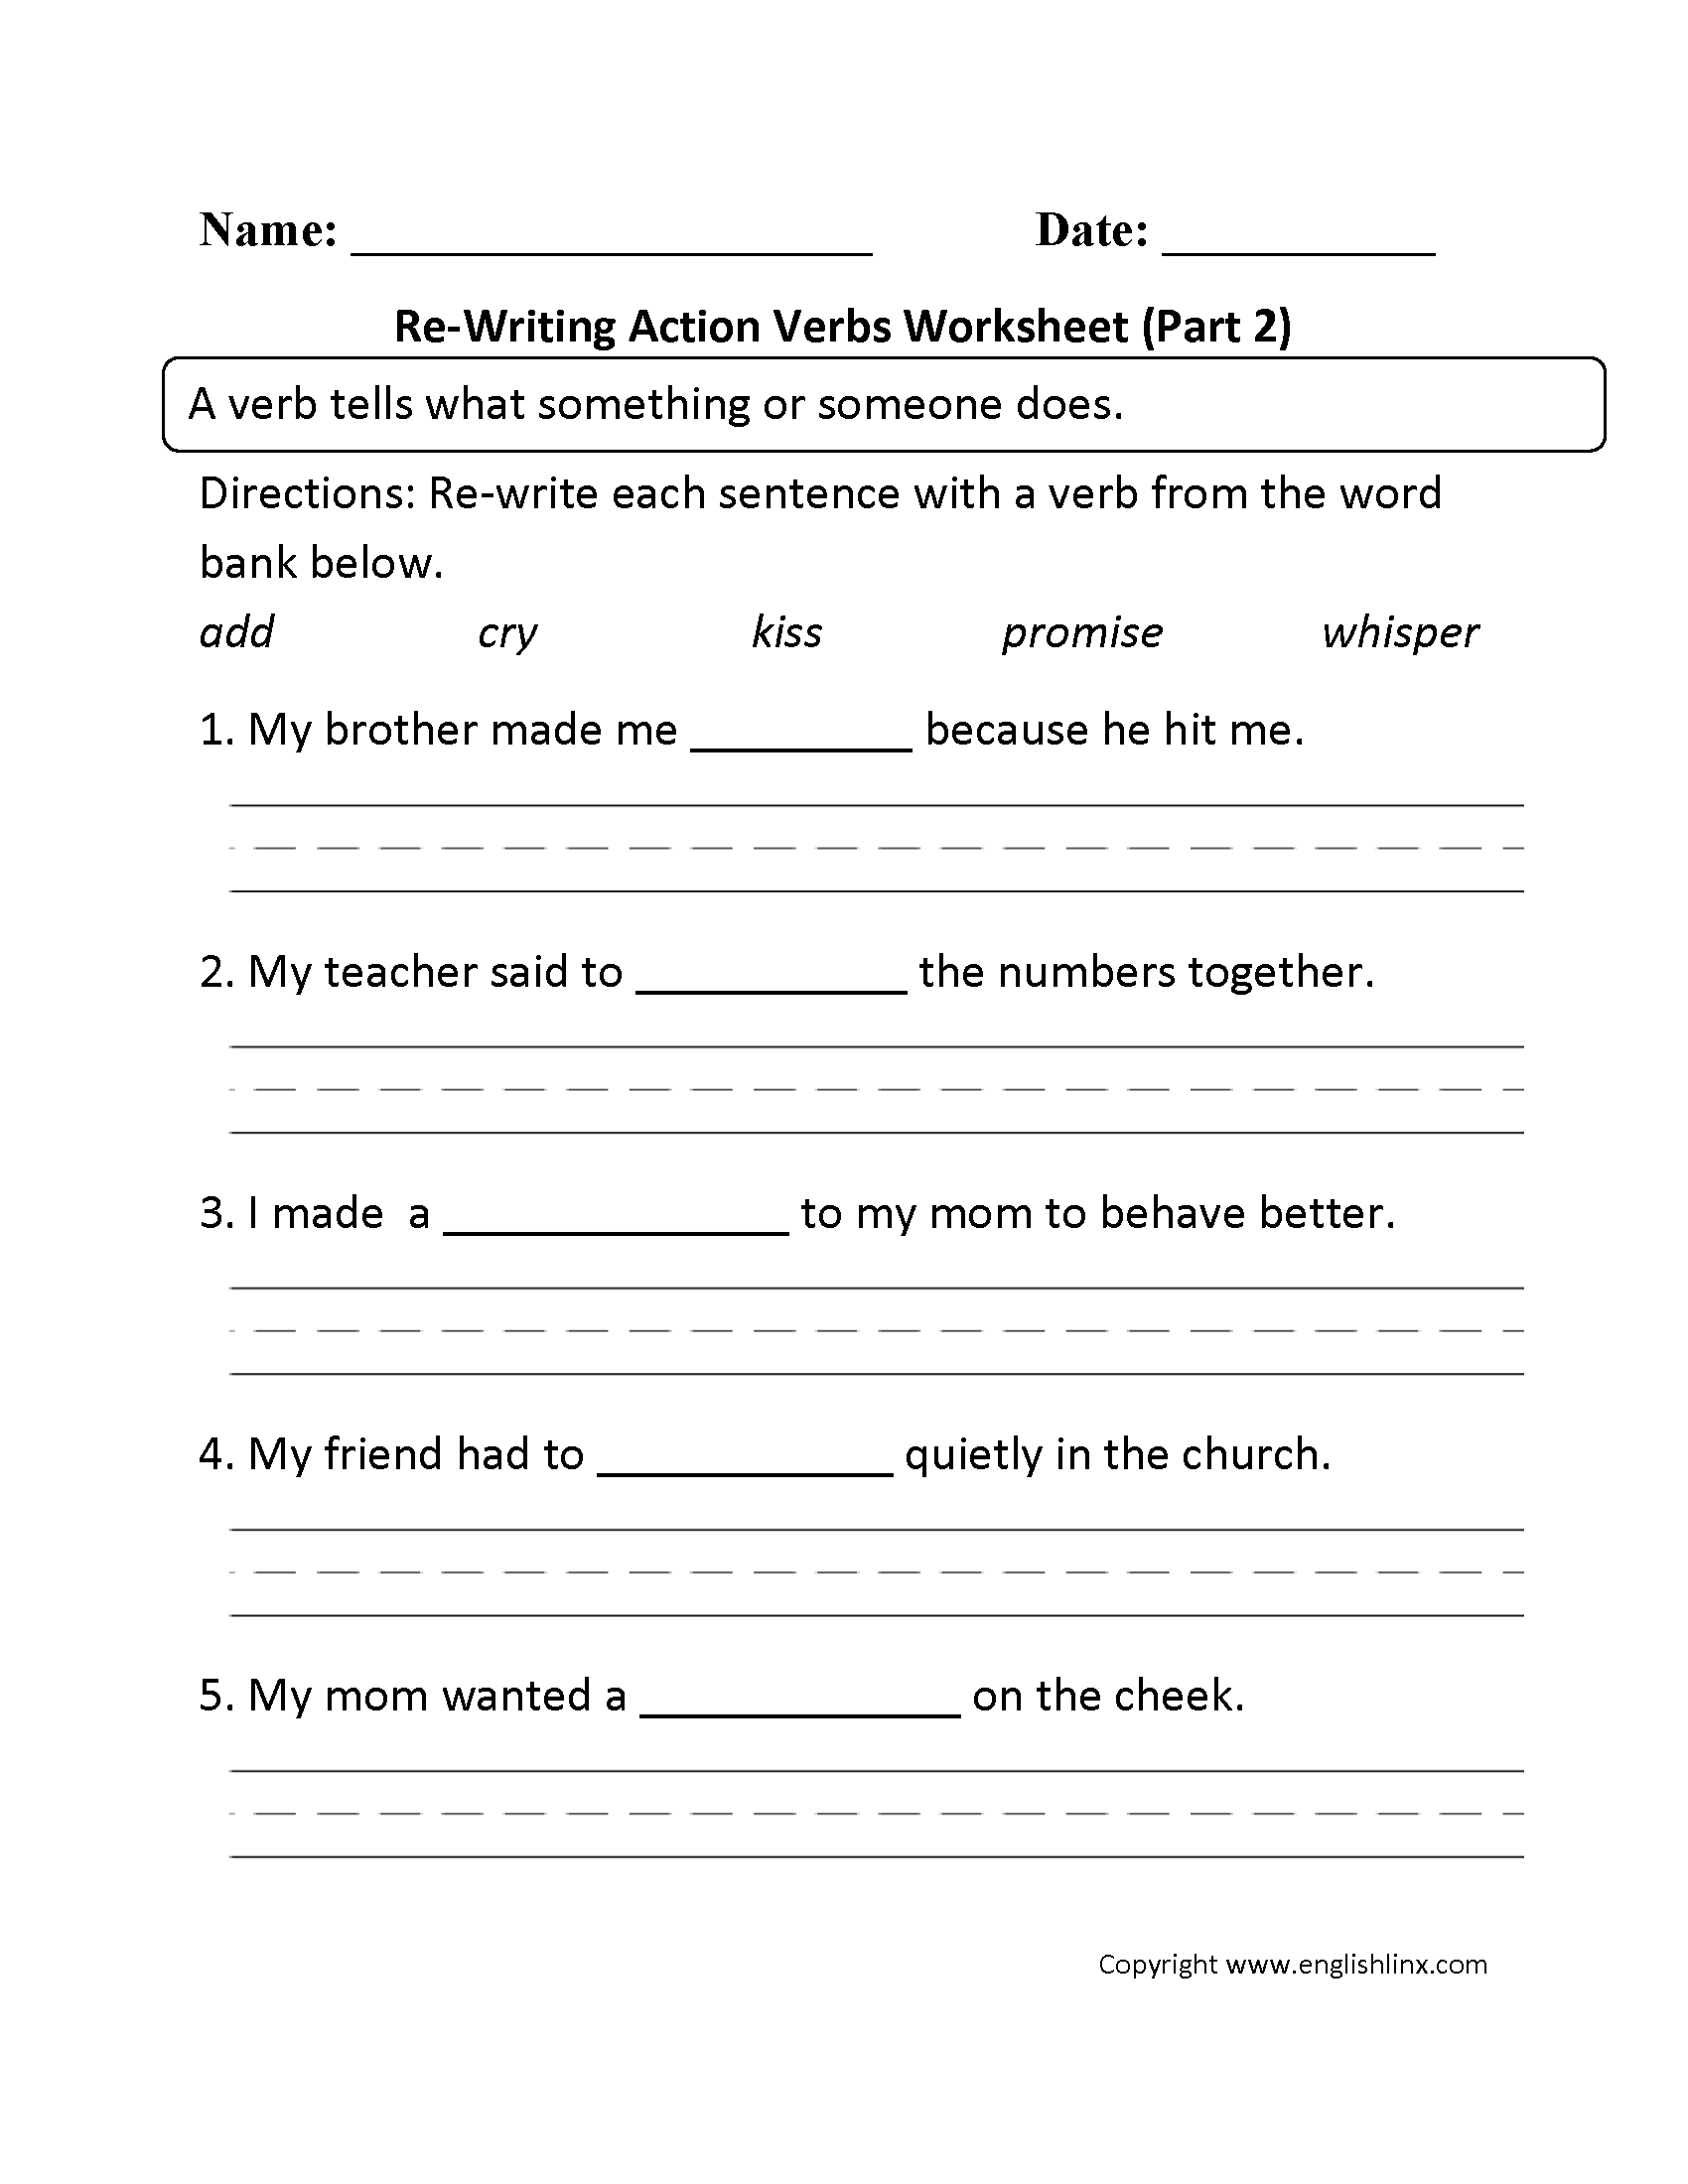 Worksheet Verbs Worksheets For Grade 2 verbs worksheets action worksheet part 2